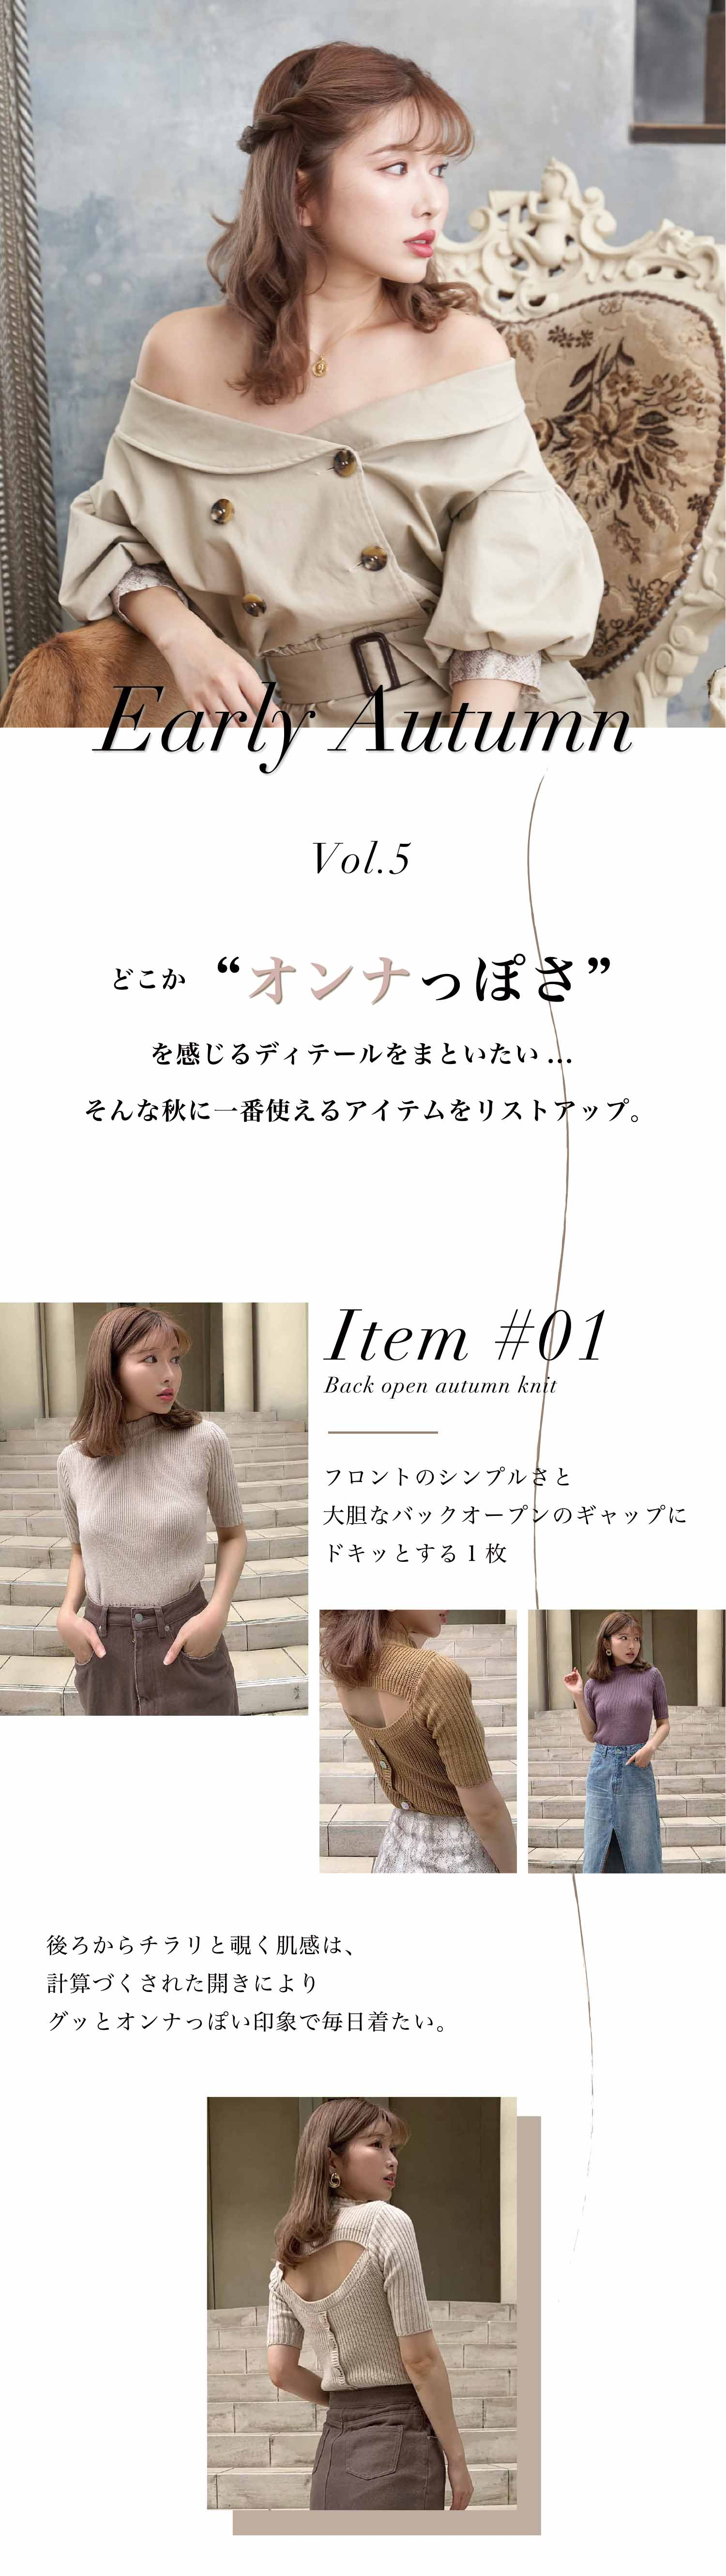 19AW EarlyAutumn(vol.5)特集1